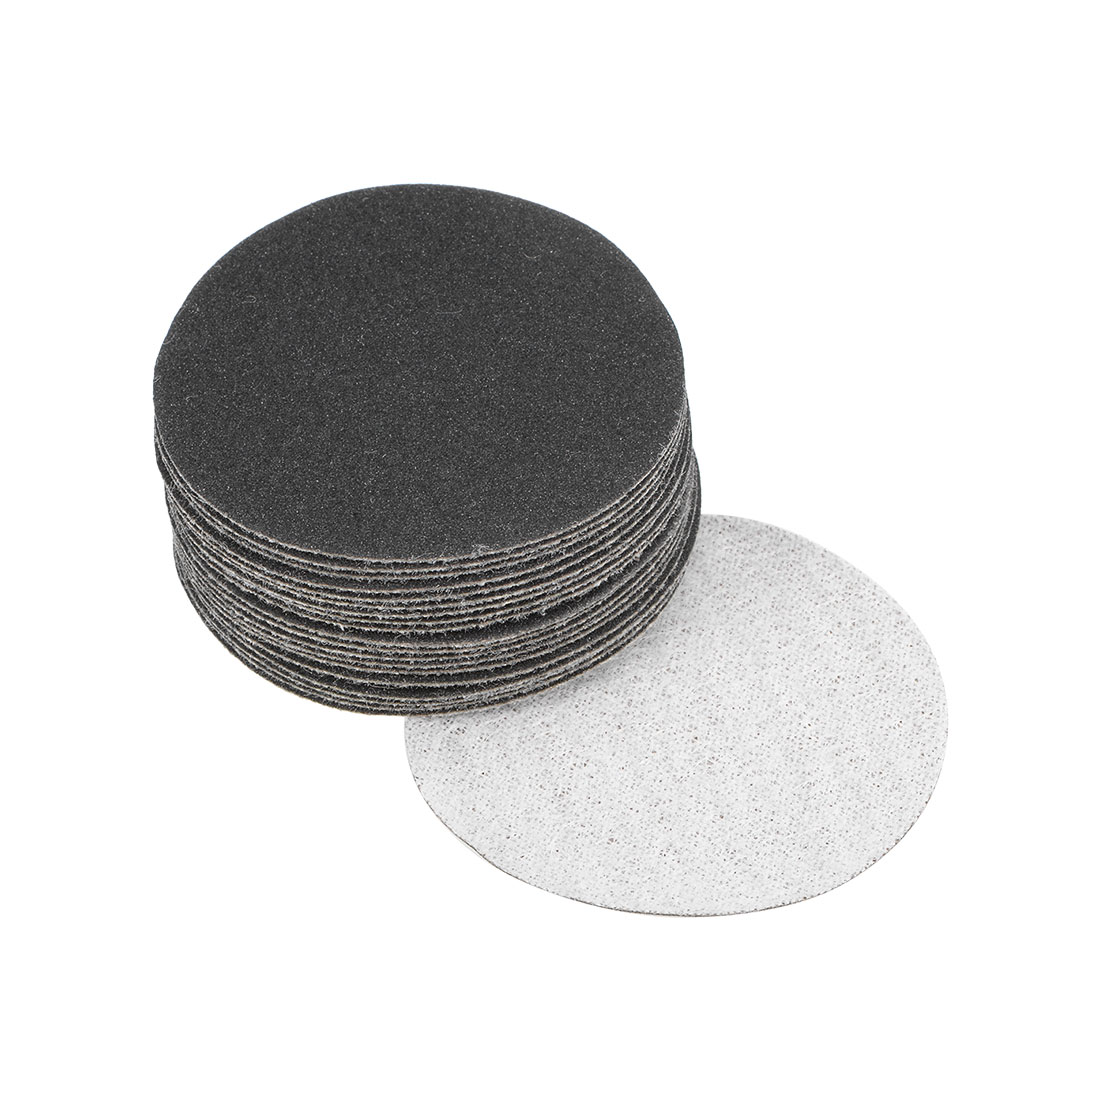 2 inch Wet Dry Discs 240 Grit Hook and Loop Sanding Disc Silicon Carbide 20pcs